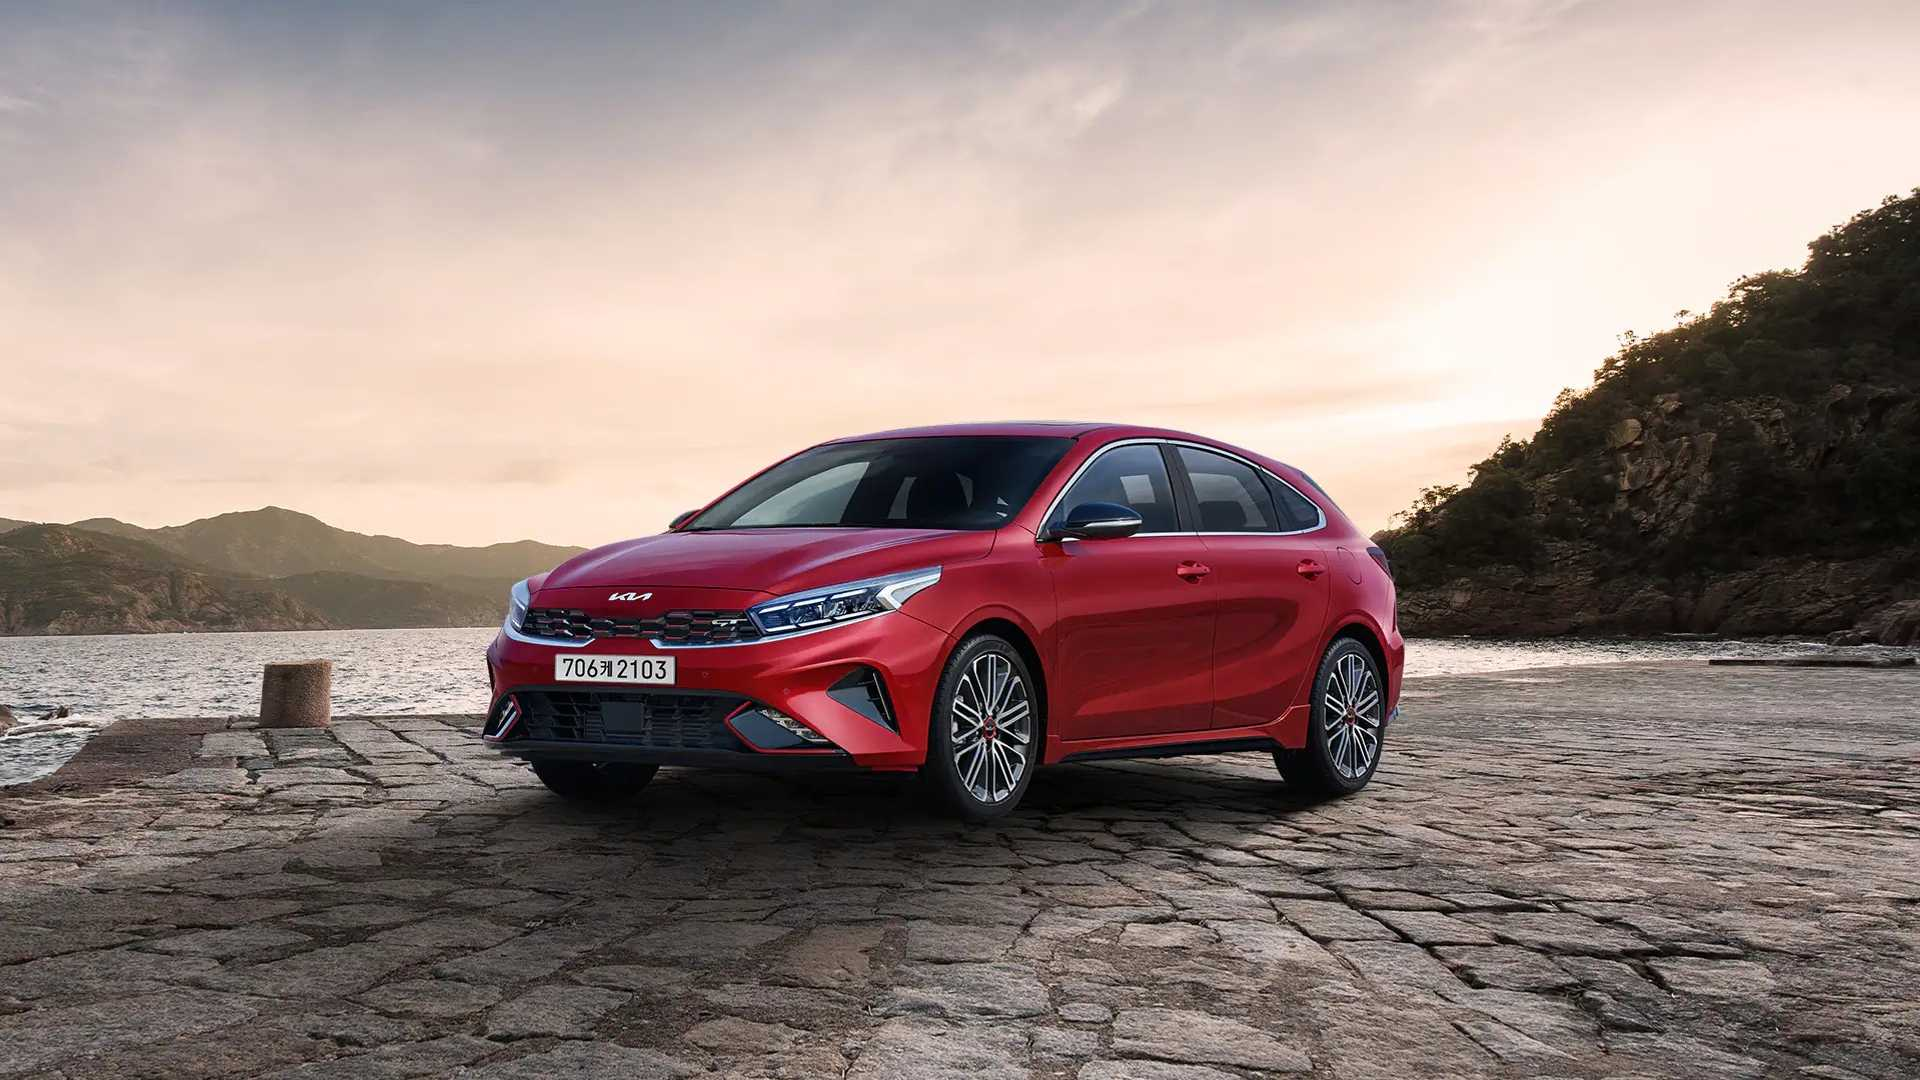 In the world where SUVs and crossovers have won, seeing a good old hatchback strive can be refreshing. After debuting the K3 facelift in South Korea, Kia has now shown us its GT version.